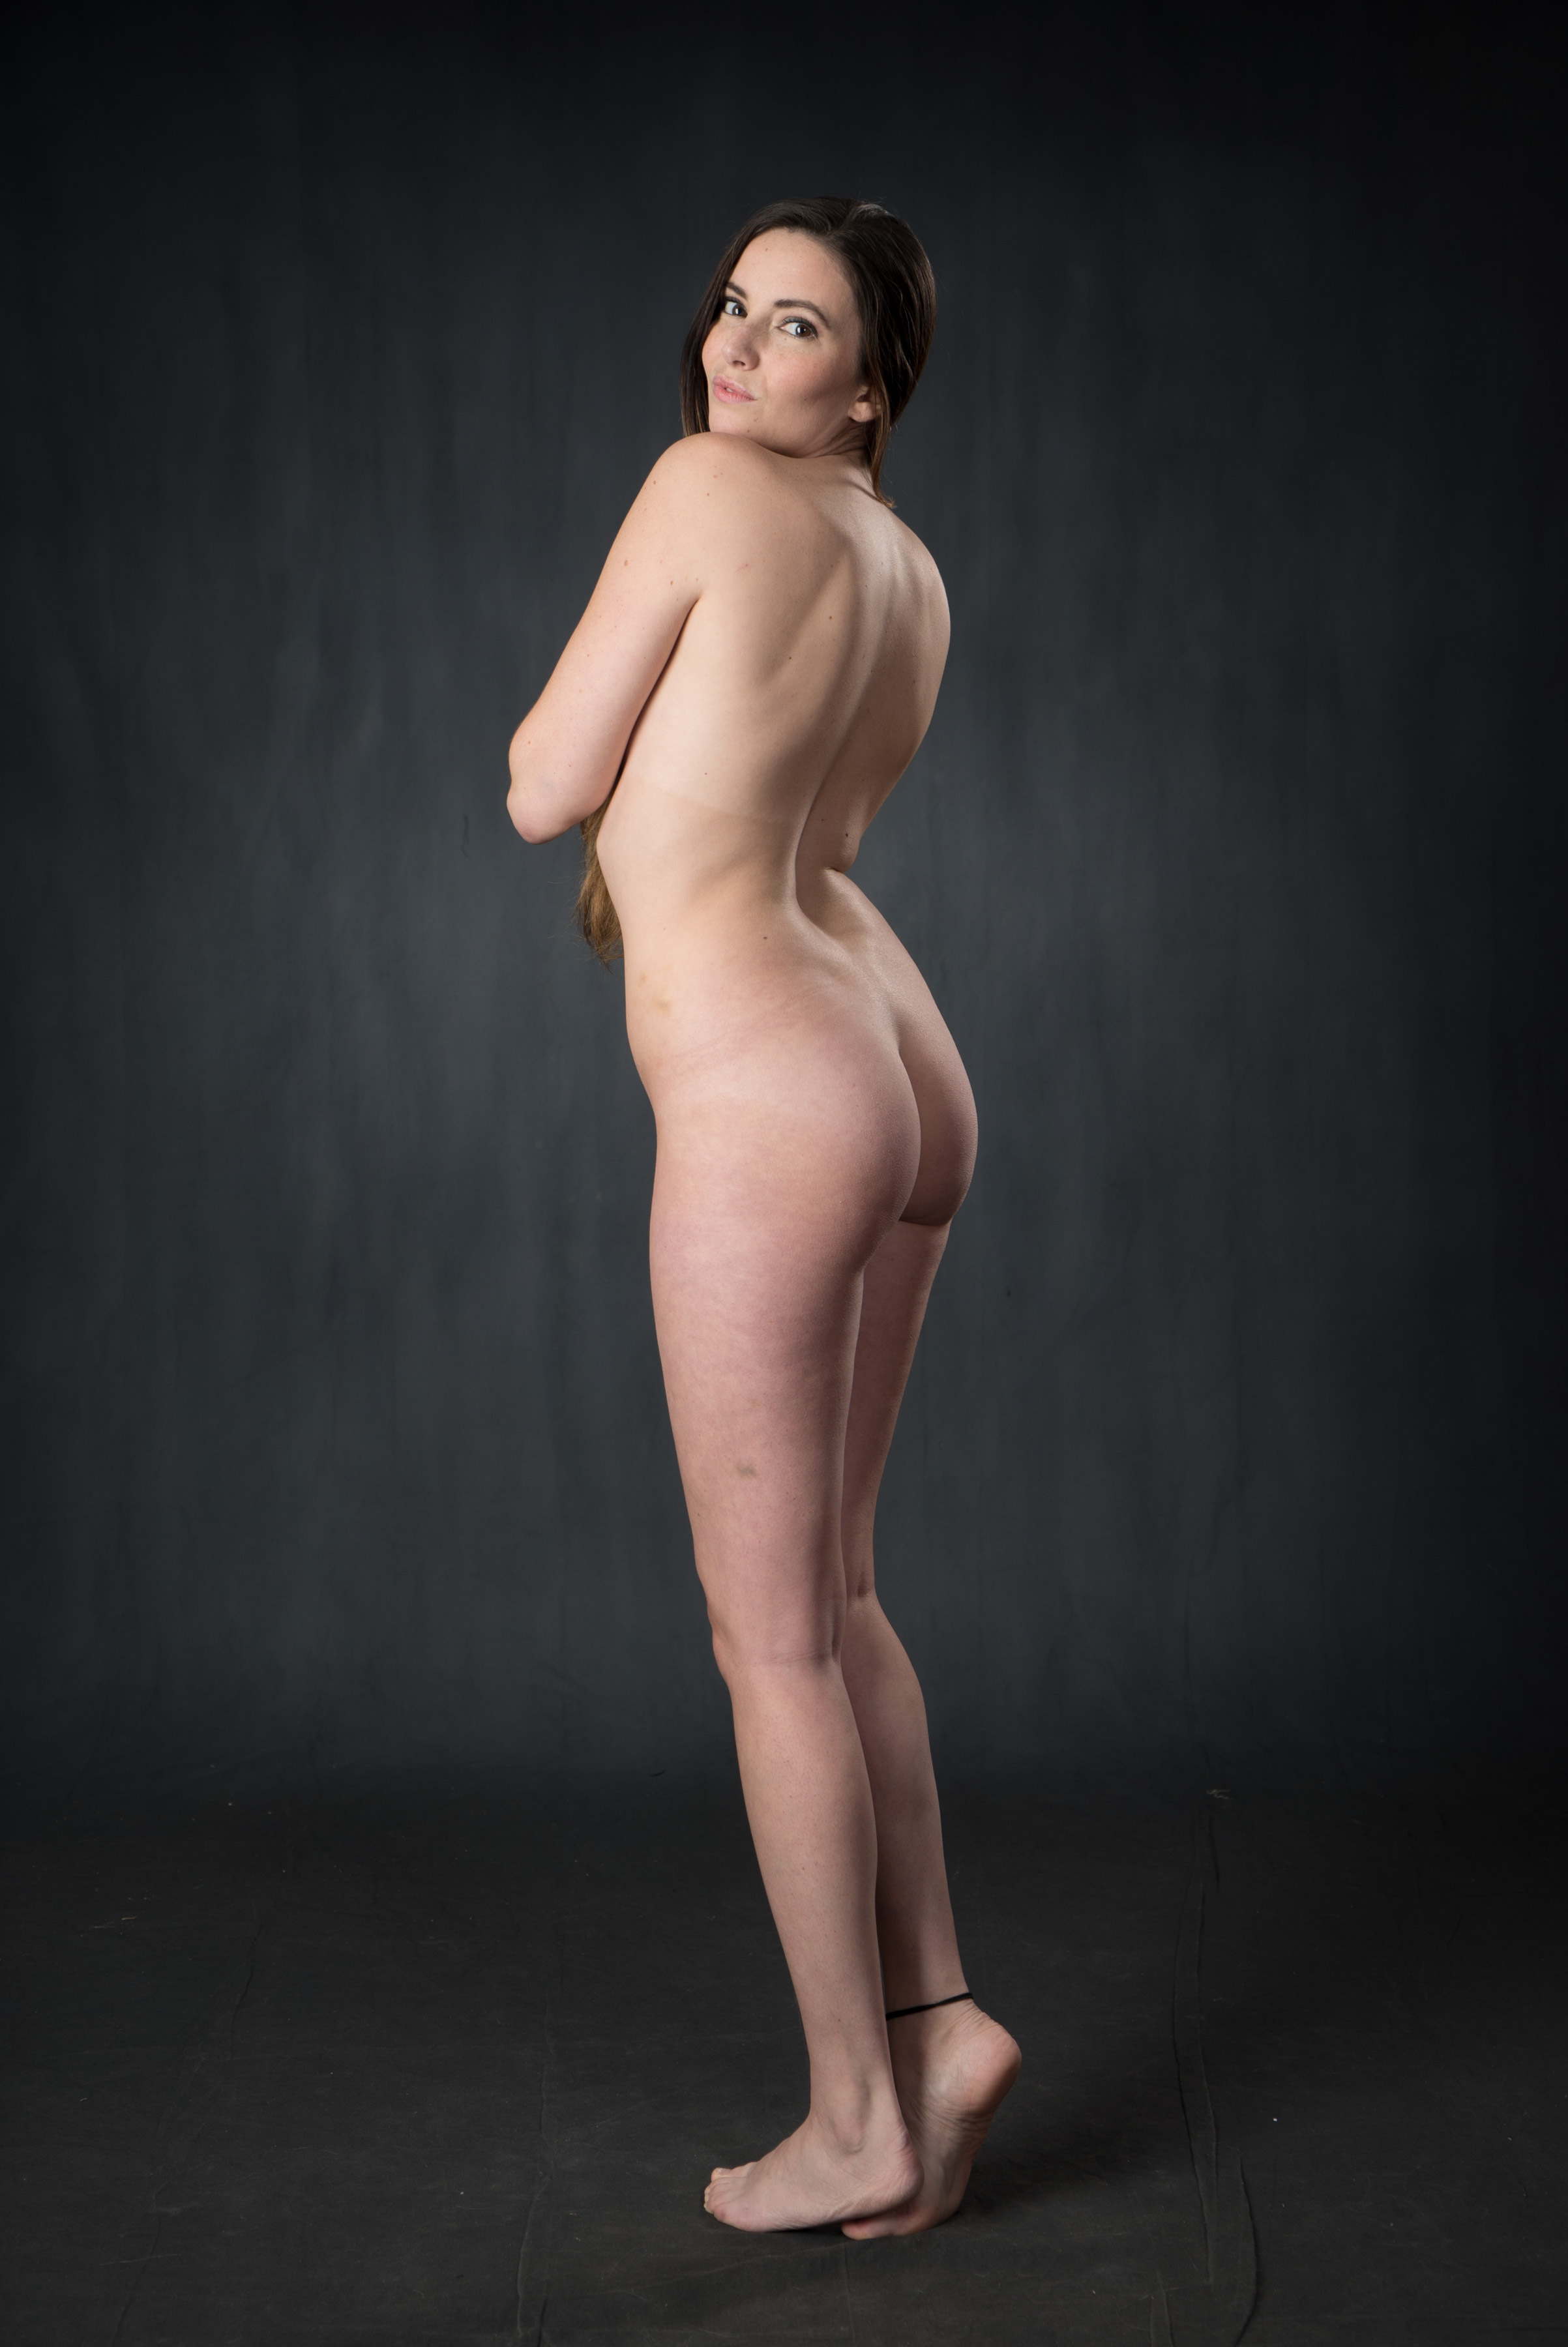 Nude Standing Poses 45